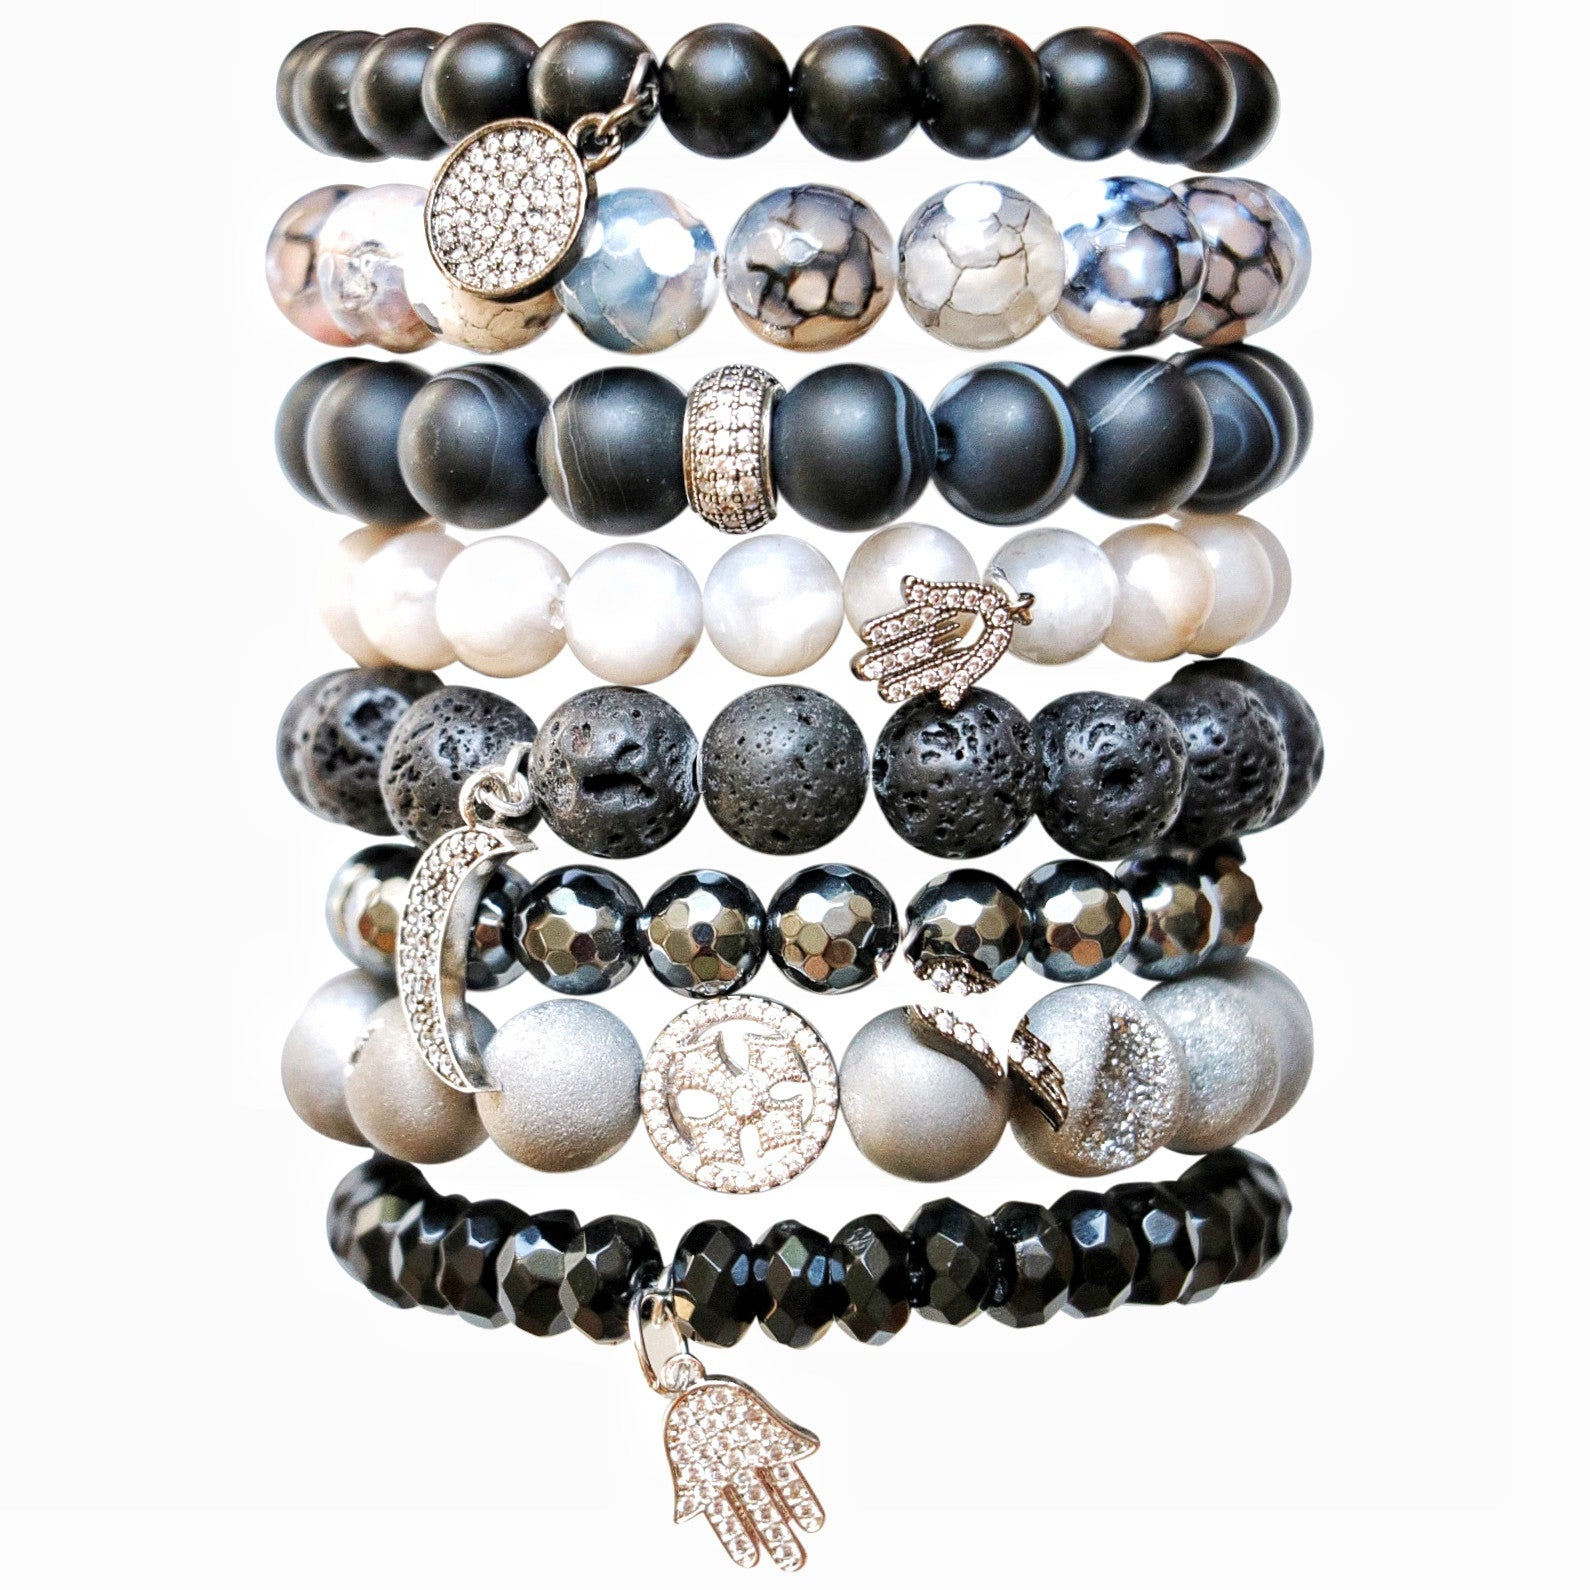 Molly Jane Designs Black Lava Charm Bracelet